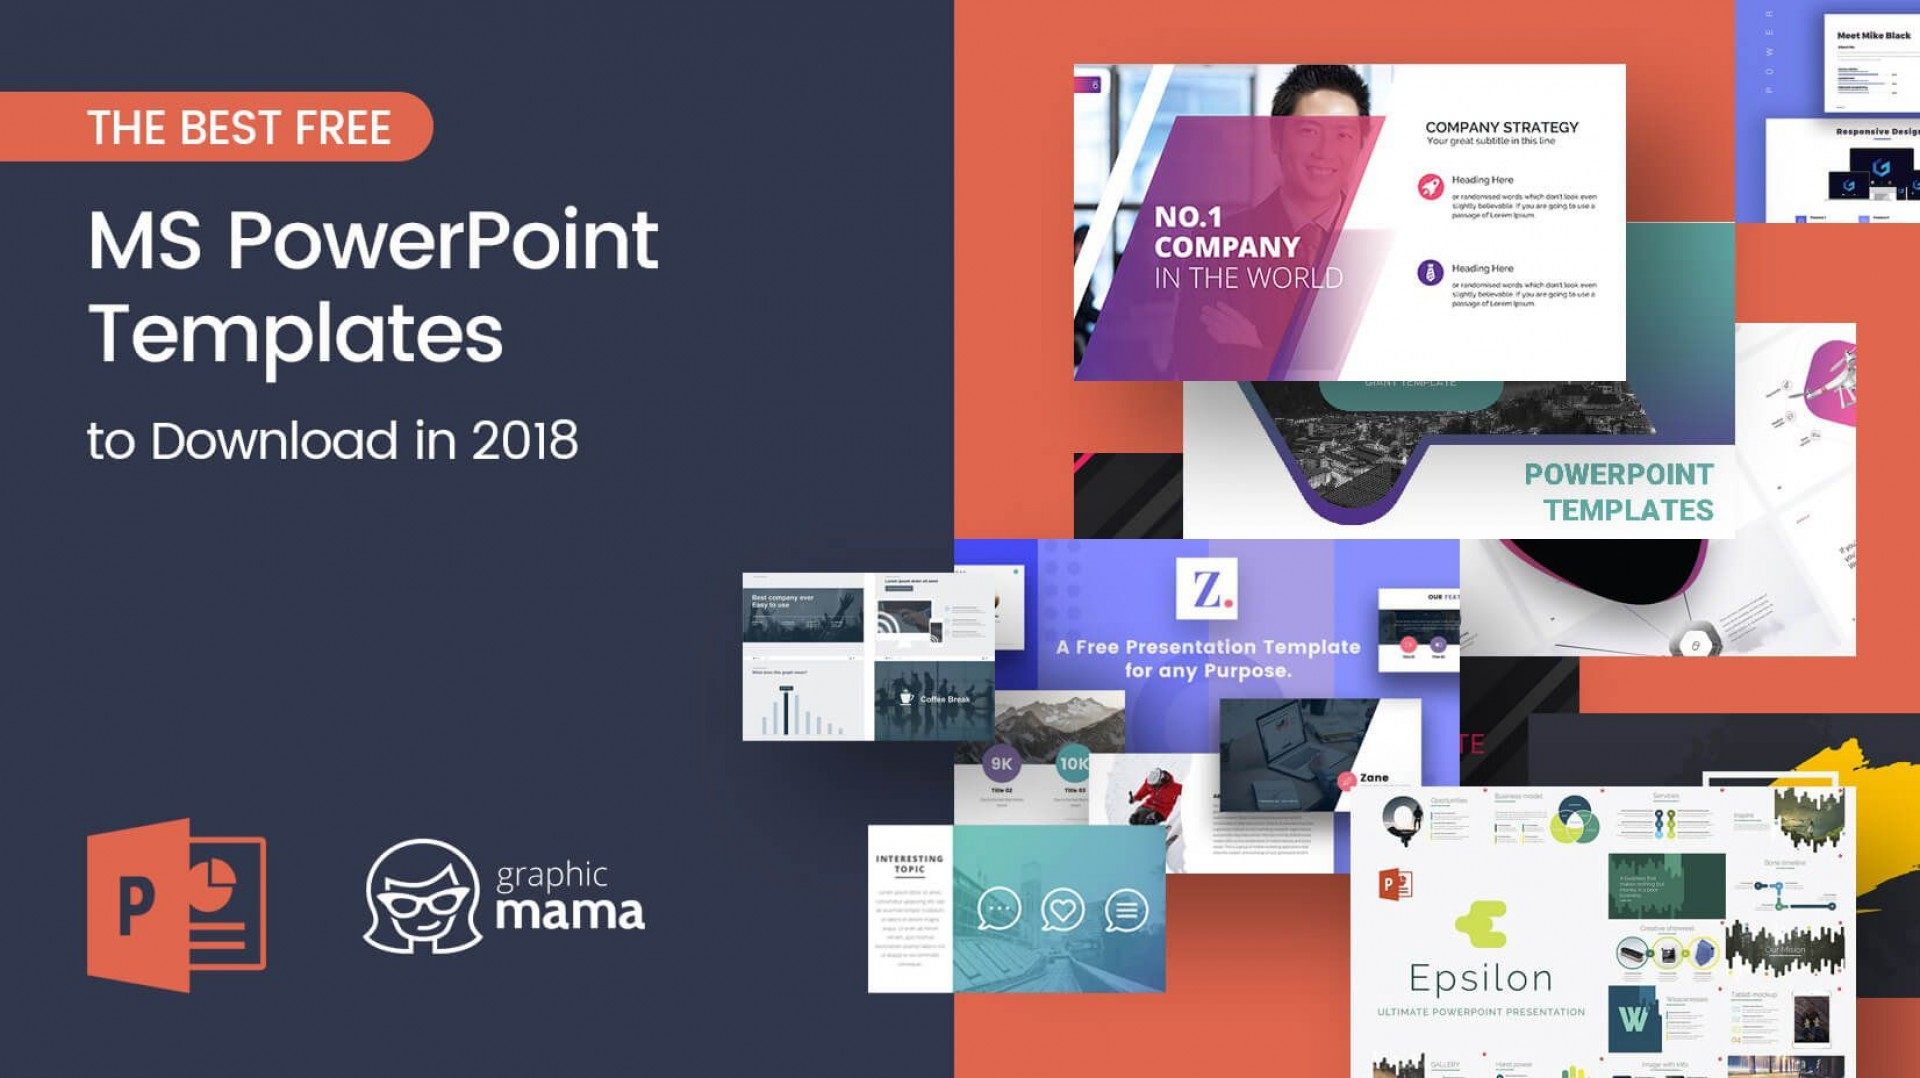 007 Exceptional Free Powerpoint Template Design Highest Quality  For Student Food Busines1920